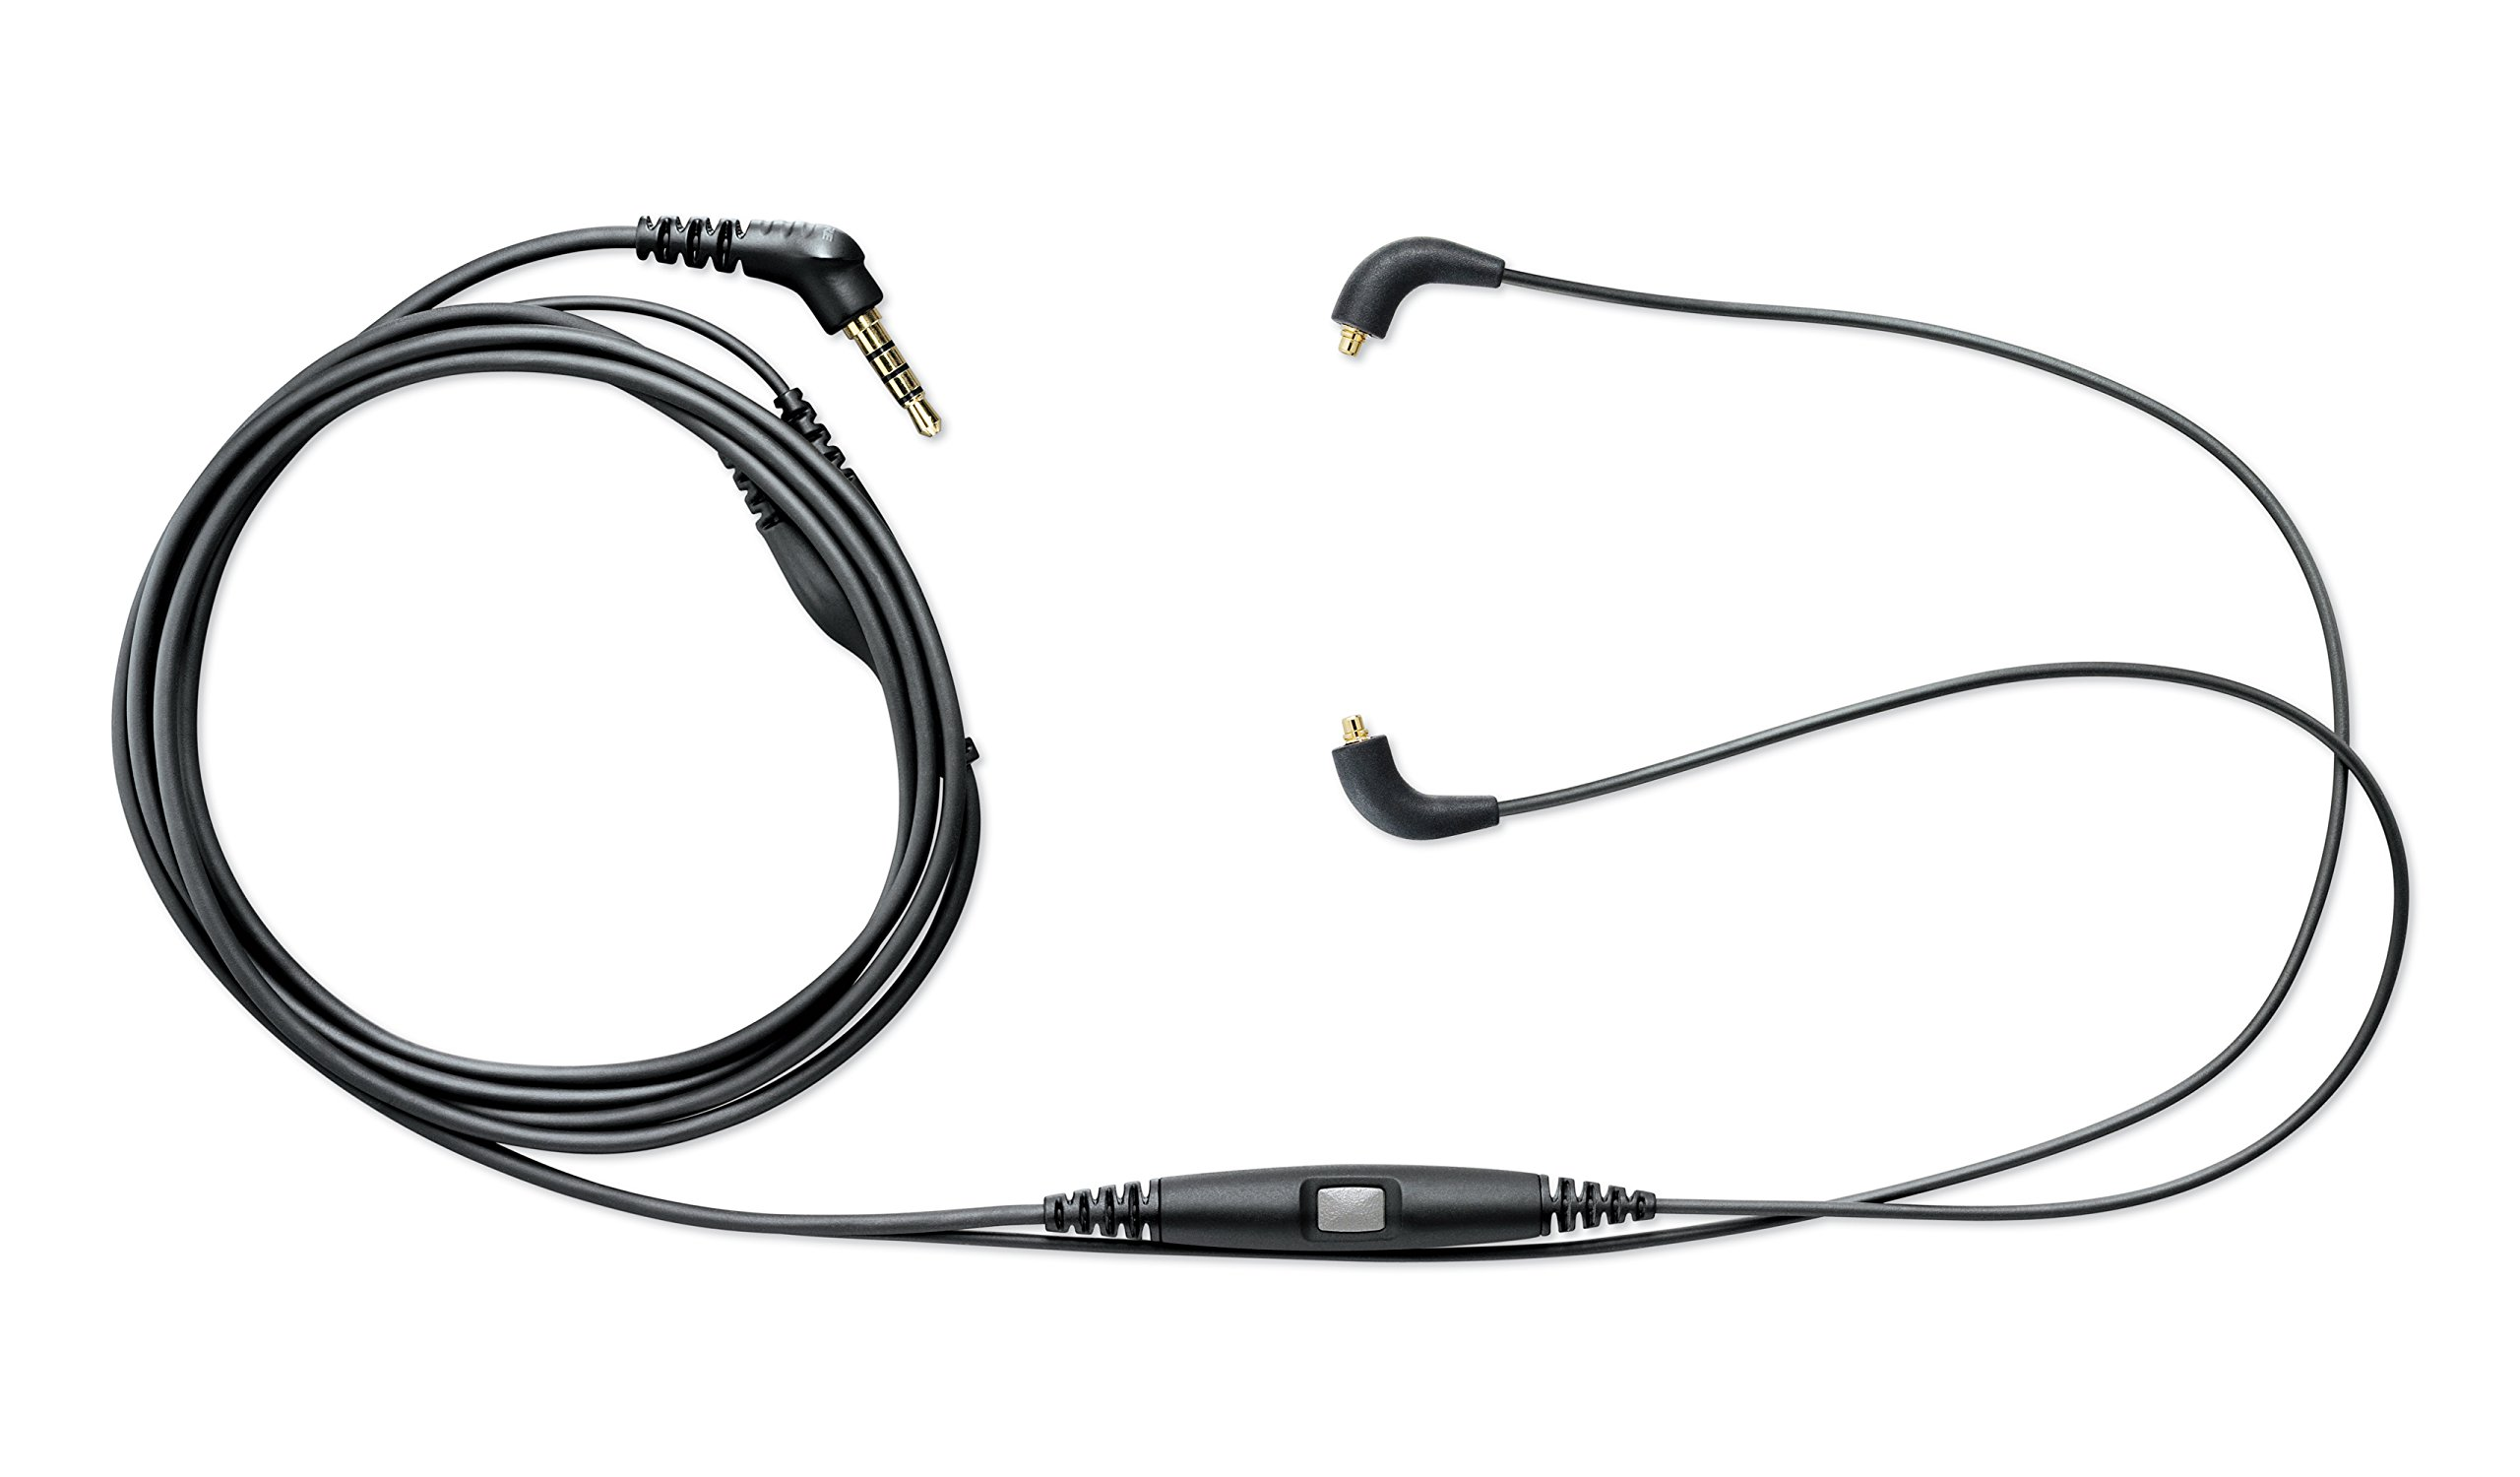 Shure CBL-M-K Music Phone Cable with Remote + Mic (One-Button Control)